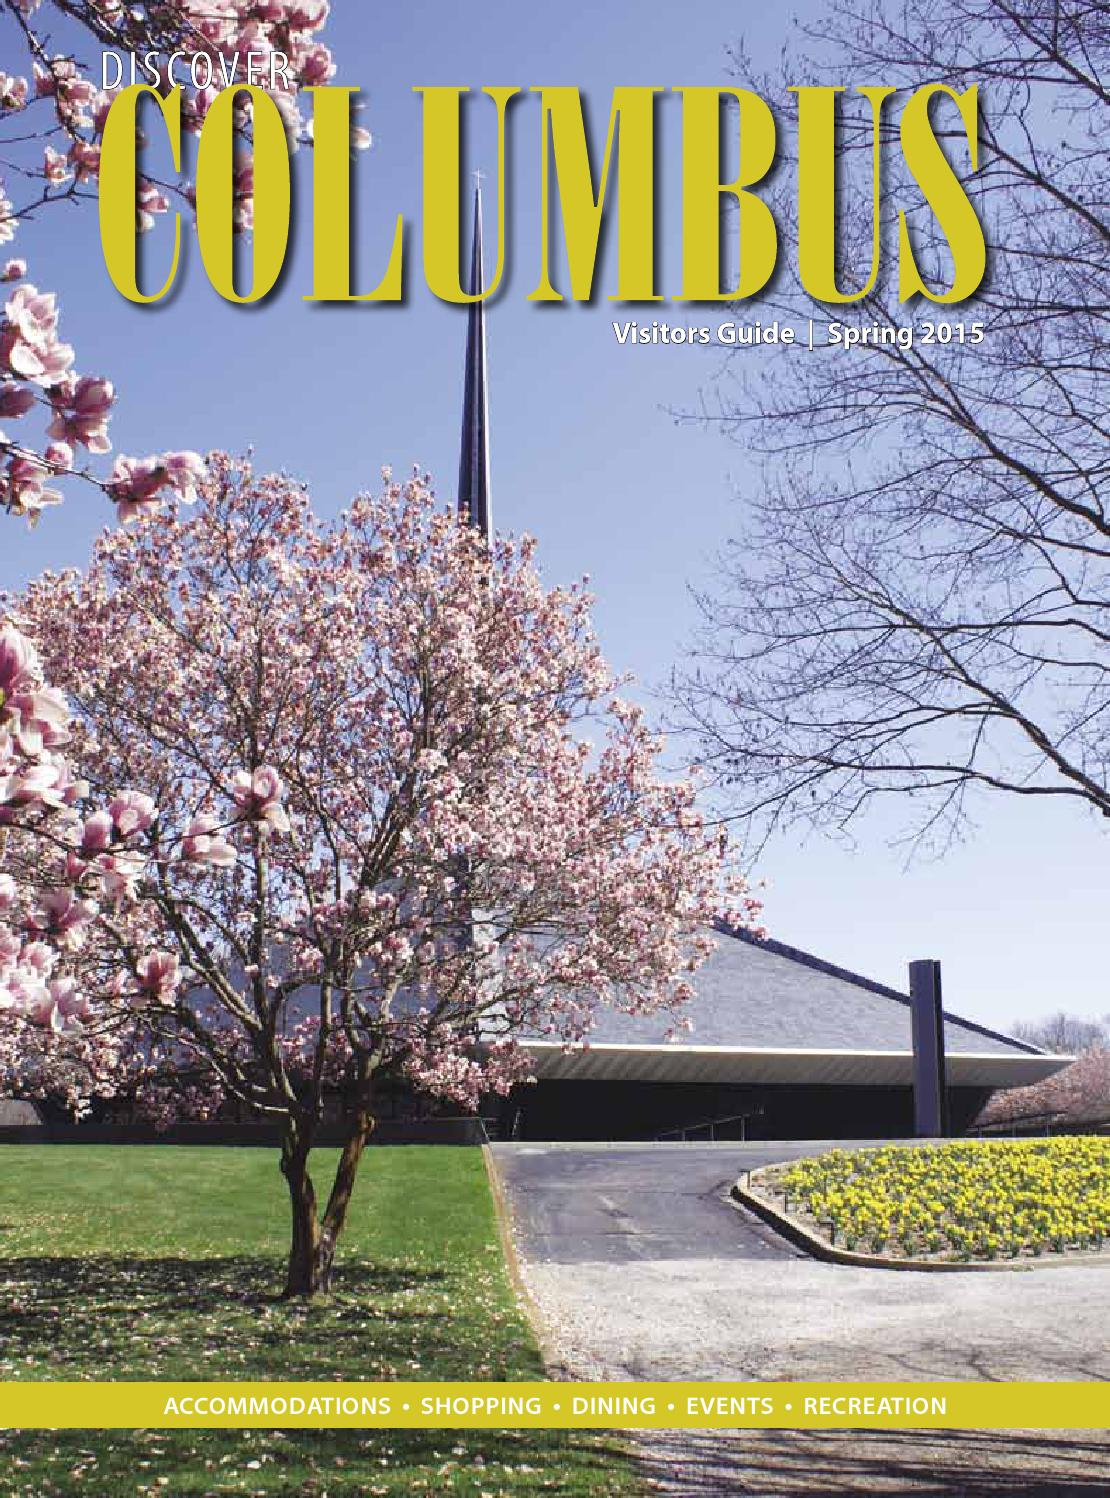 Discover columbus spring 2015 by aim media indiana issuu for Columbus spring